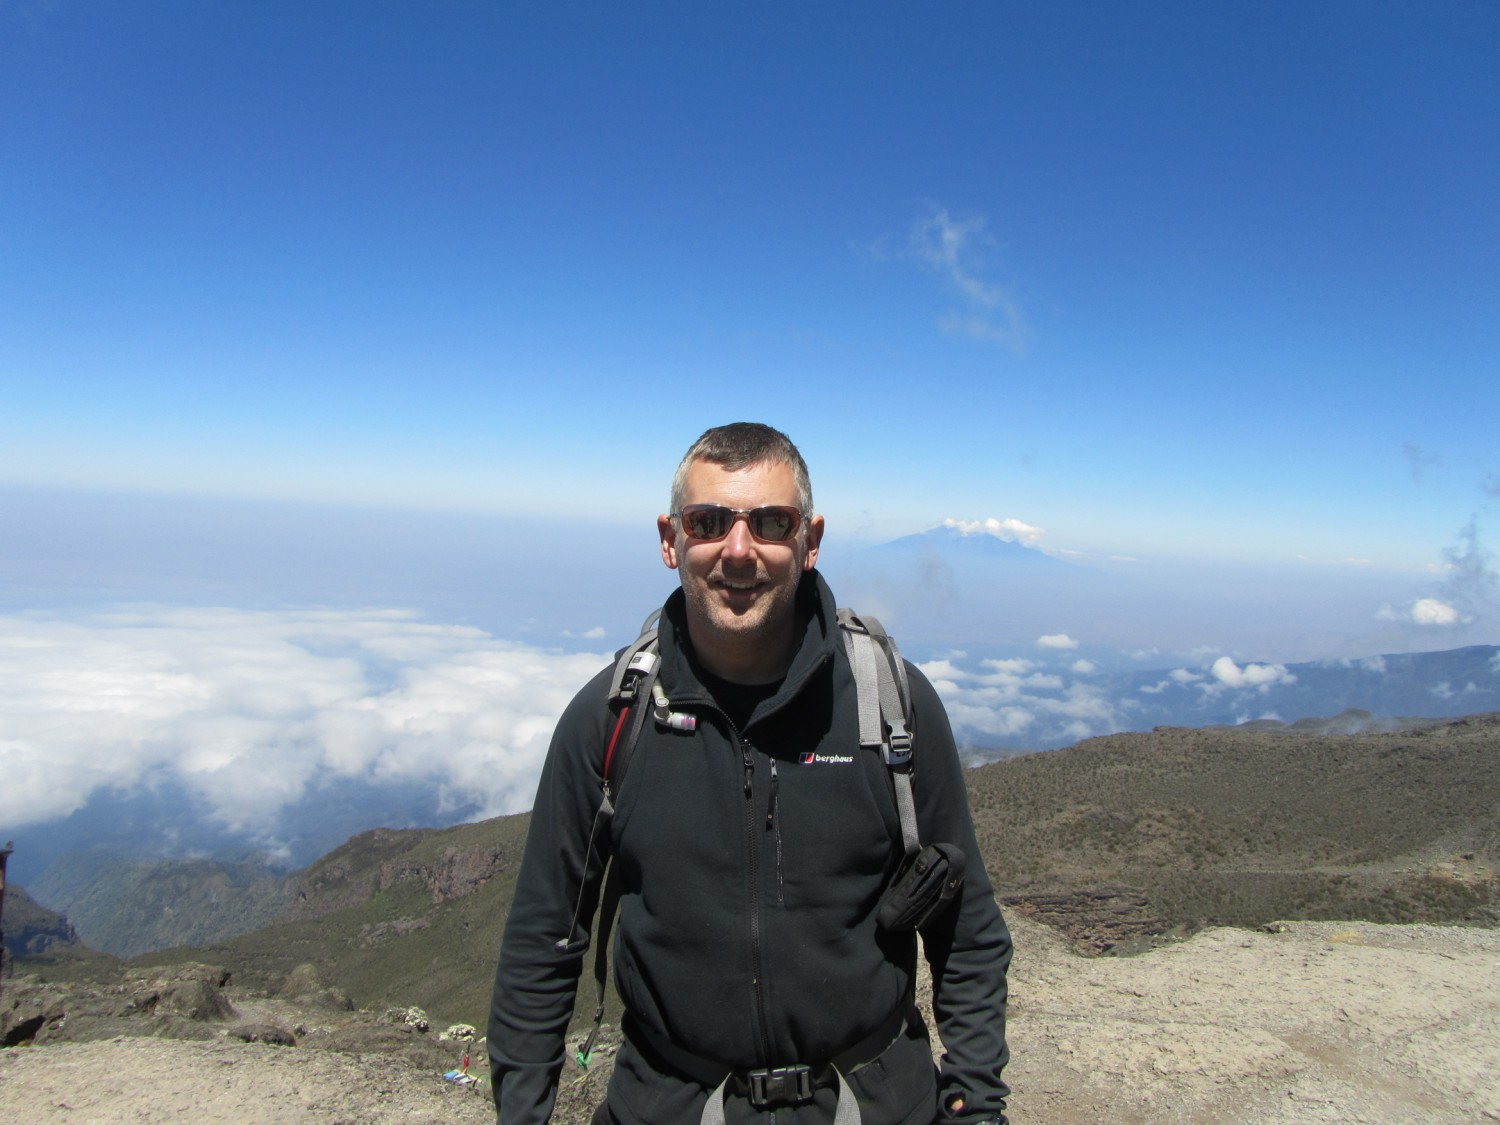 Mark Roberts half way up Kilimanjaro in September 2013. This was the last of the big challenges for Elise for Life, and the challenge that broke through the £1million target.